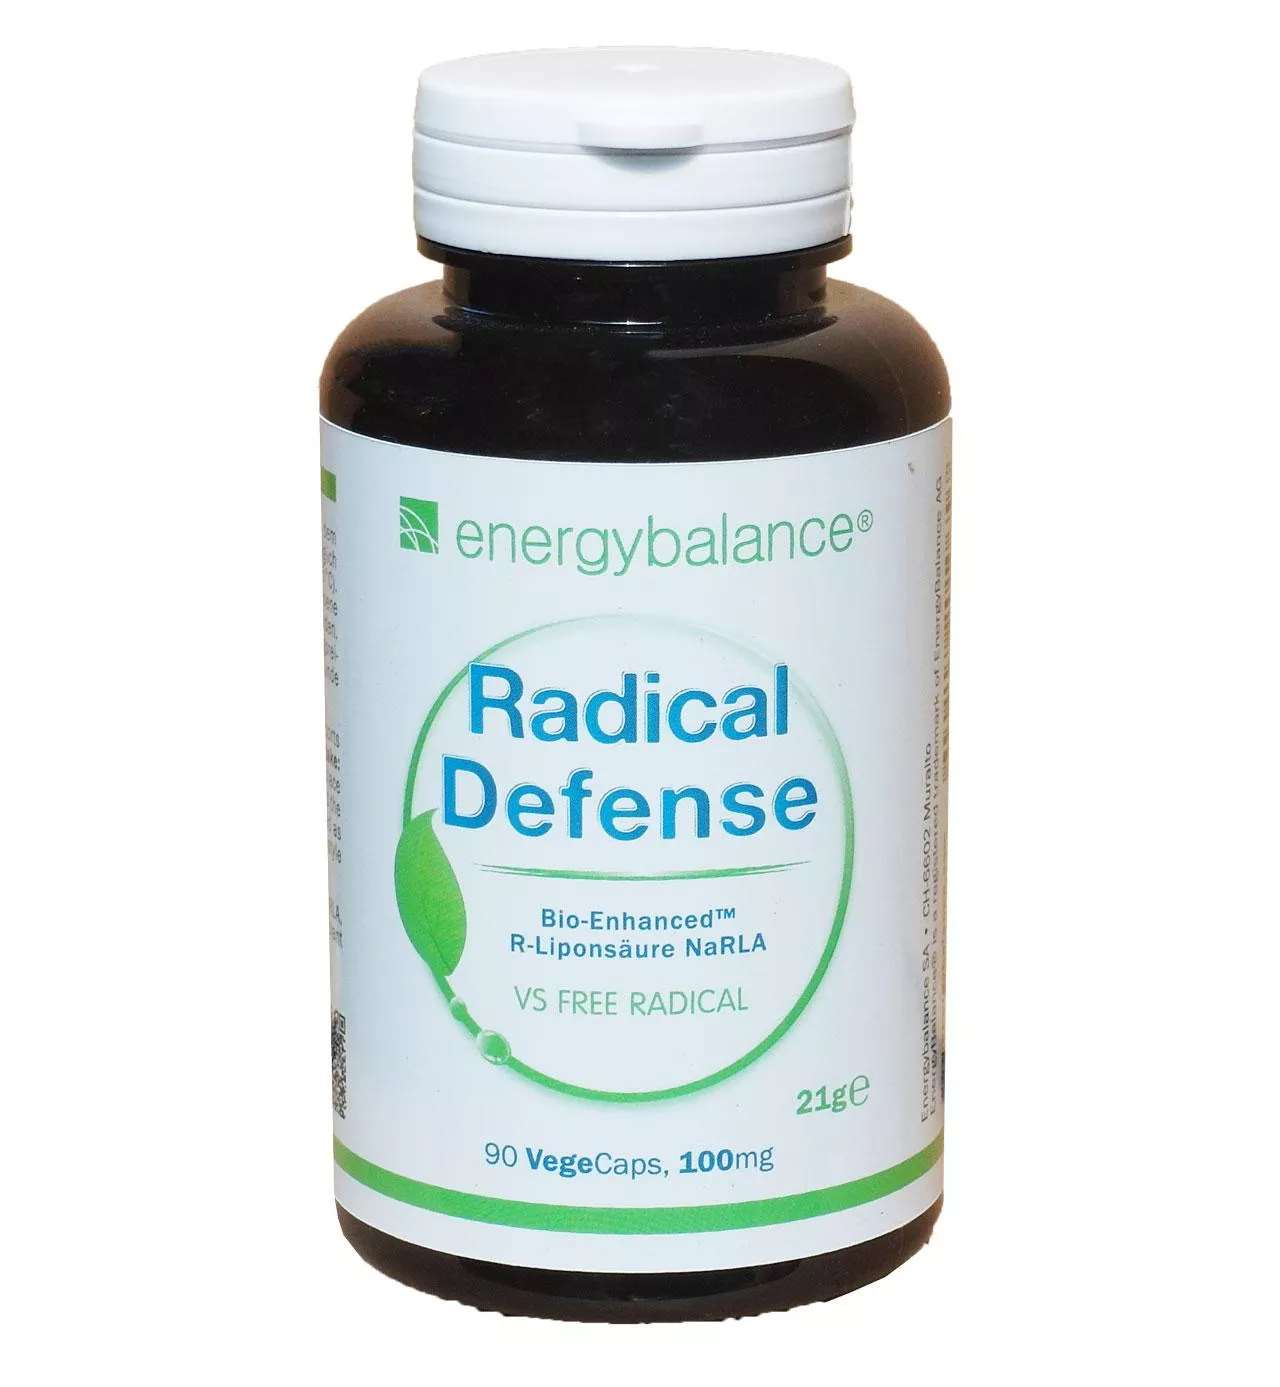 Radical Defense R-Liponsäure NaRLA, 90 VegeCaps